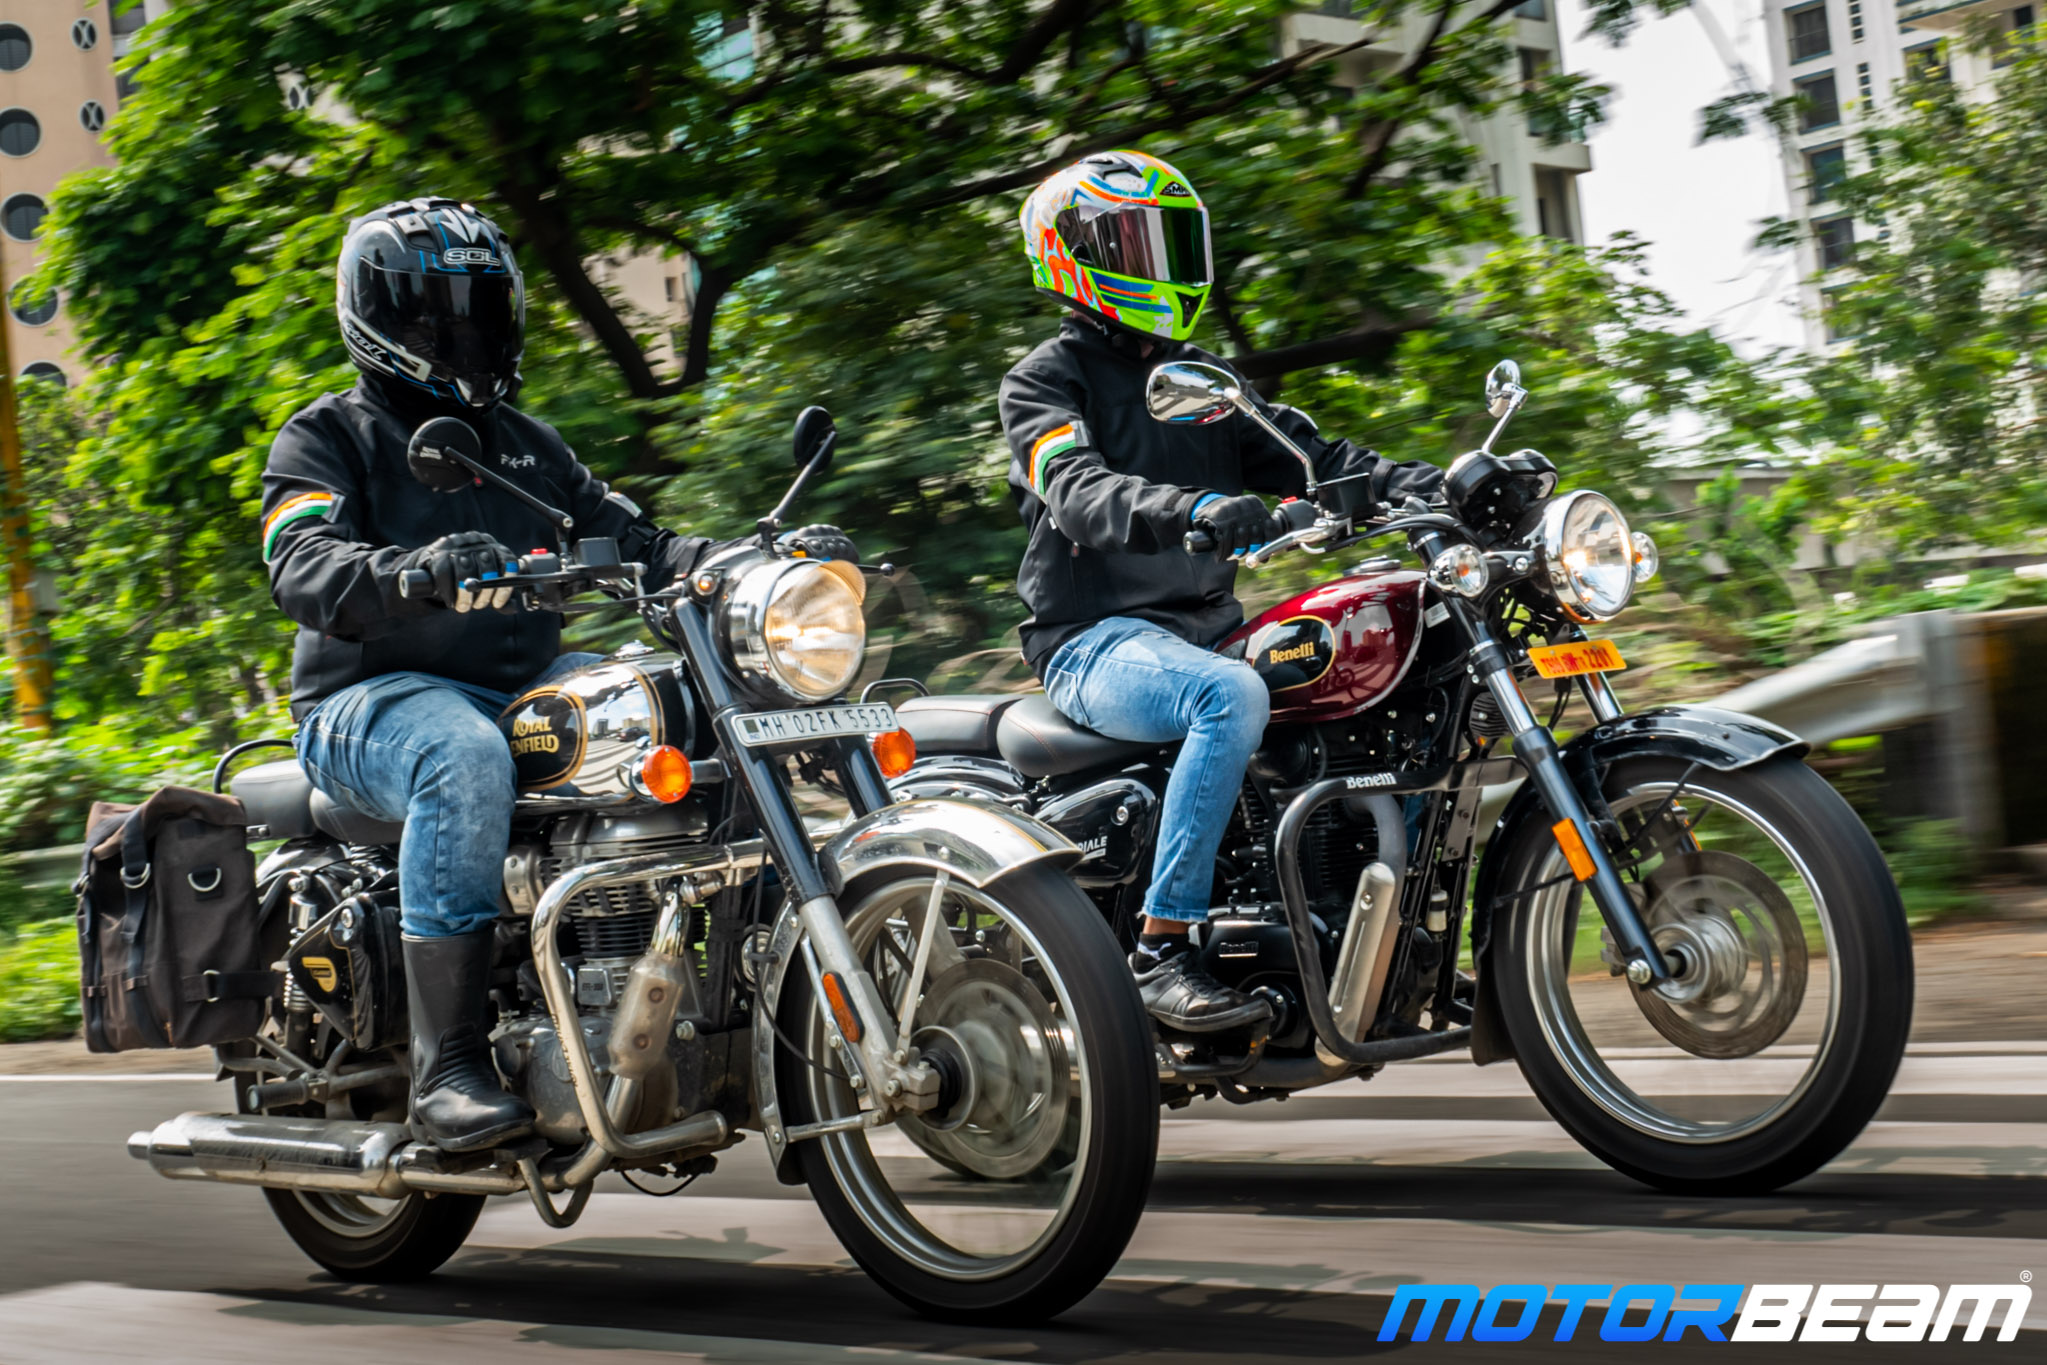 Benelli Imperiale 400 vs Royal Enfield Classic 350 Comparison Review 3